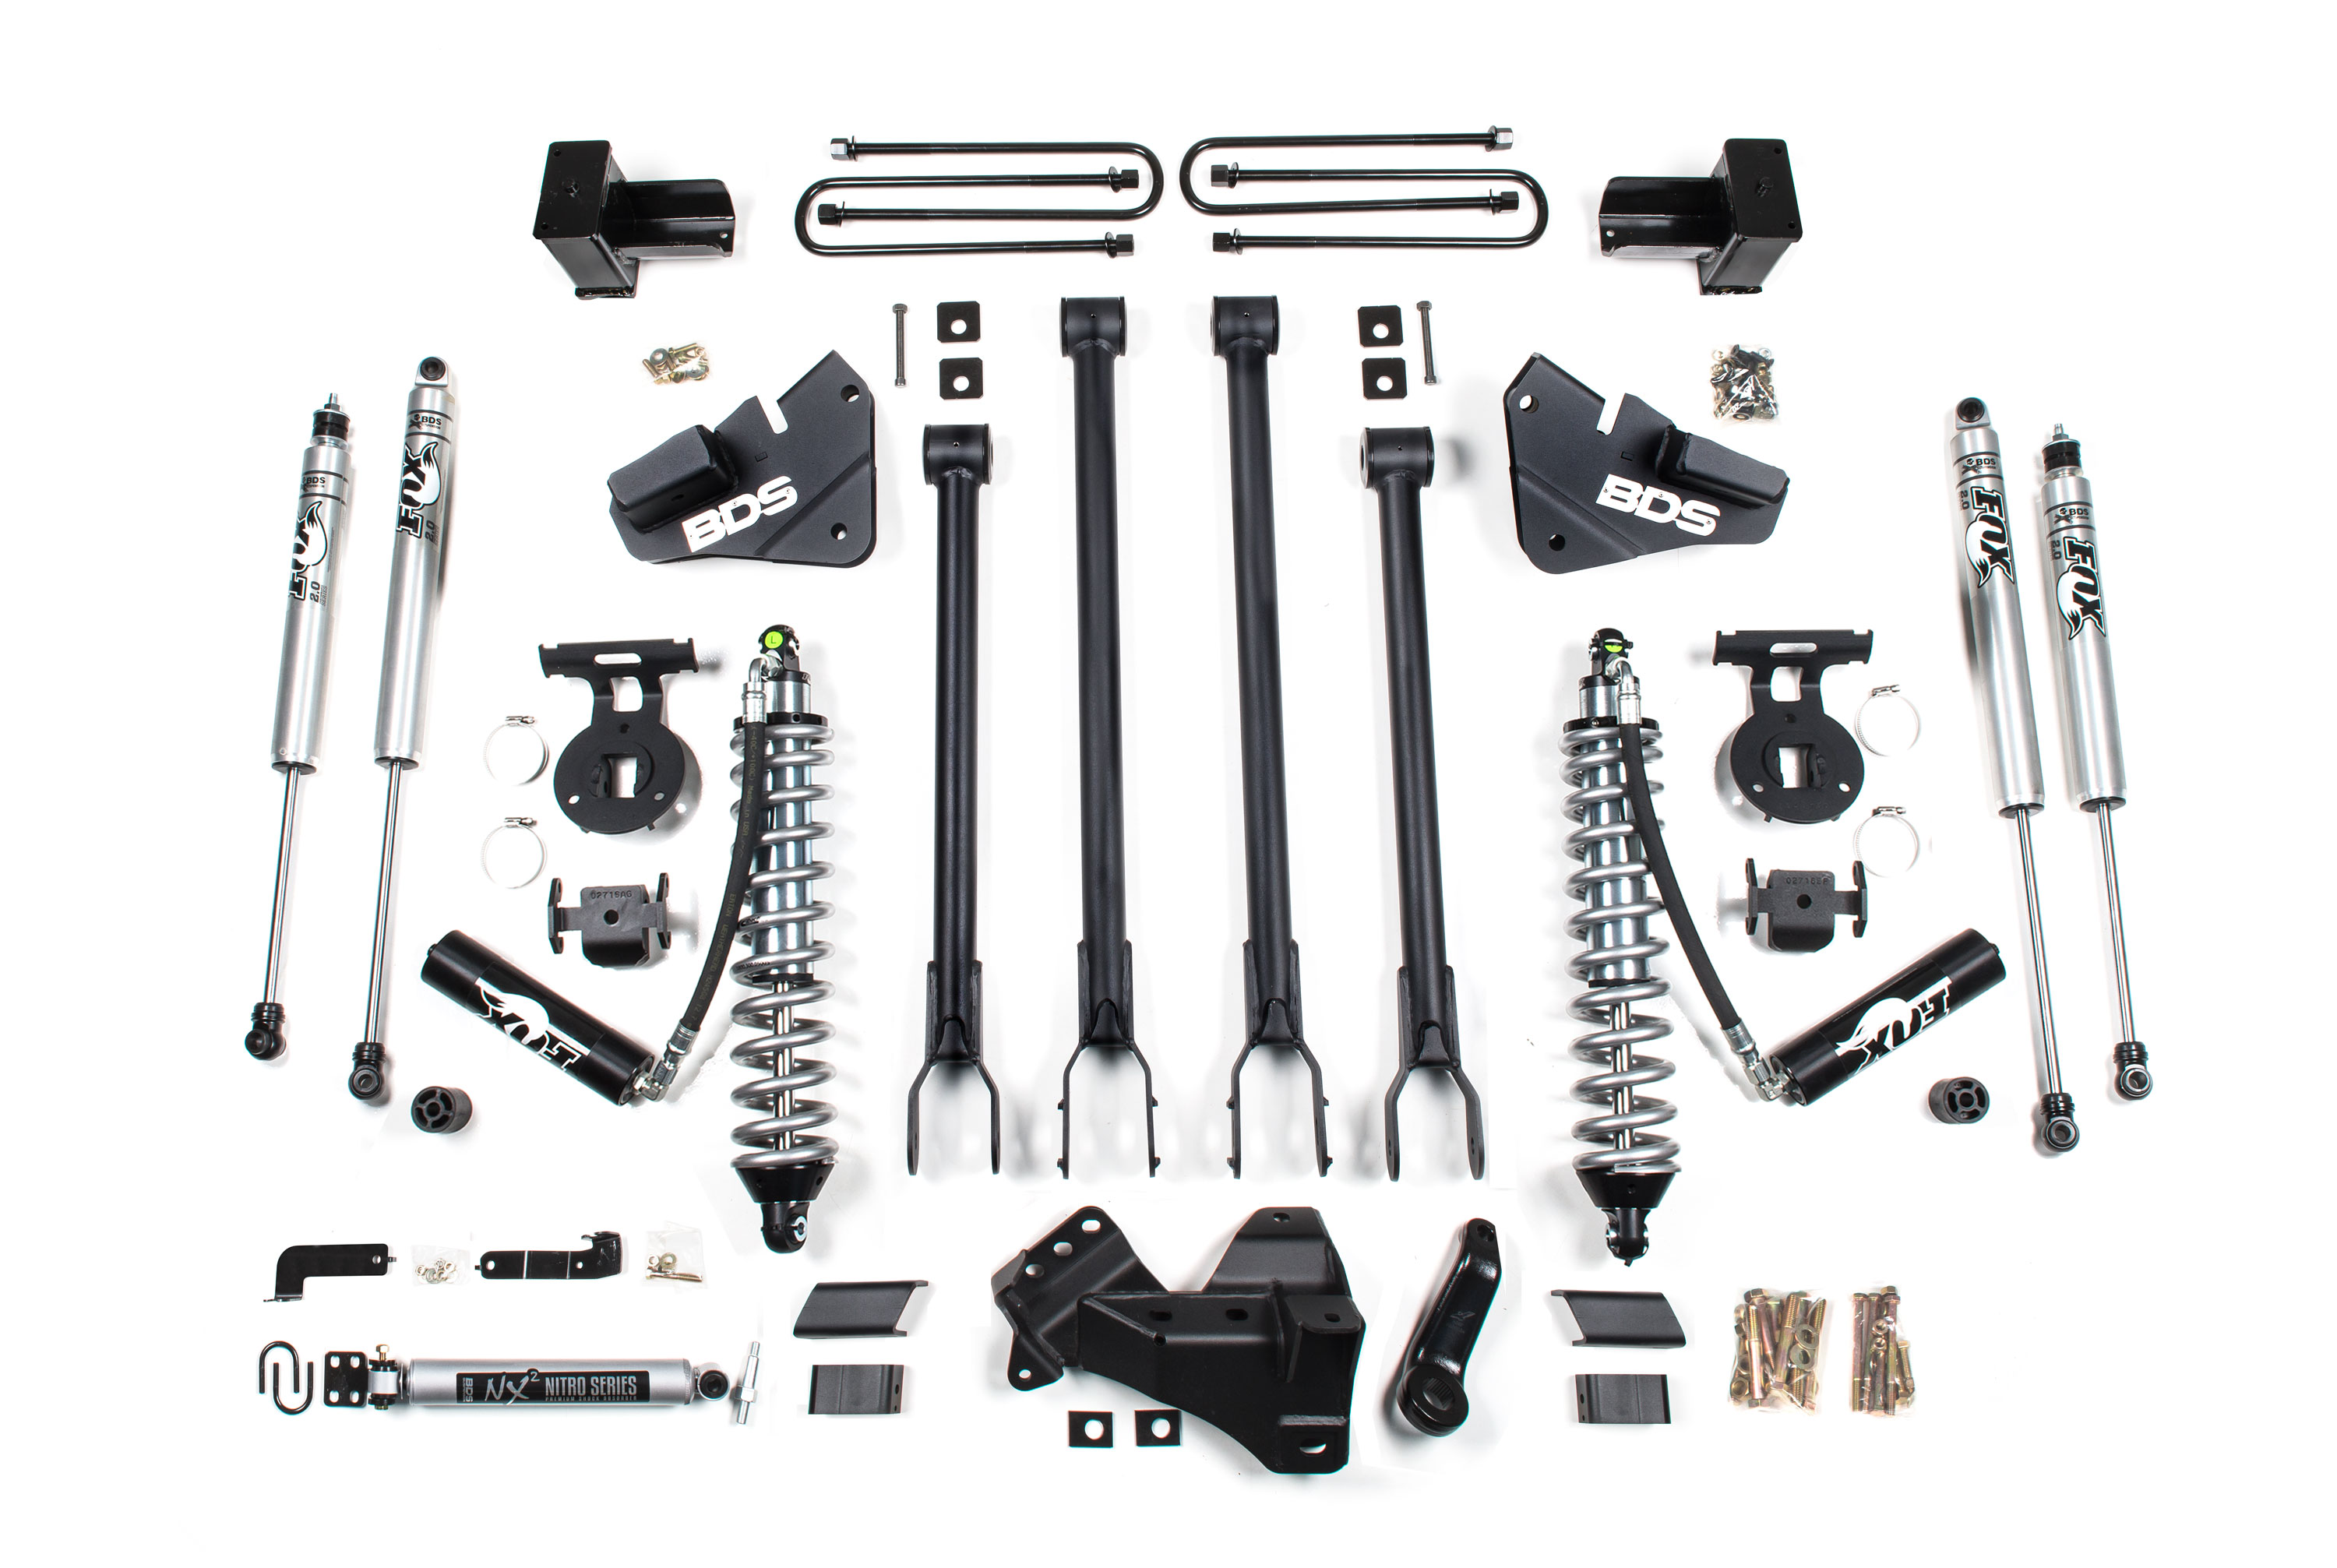 00-04 Ford Super Duty 4x4 Front Stabilizer Bar End Link Kit Mevotech HD Upgrade